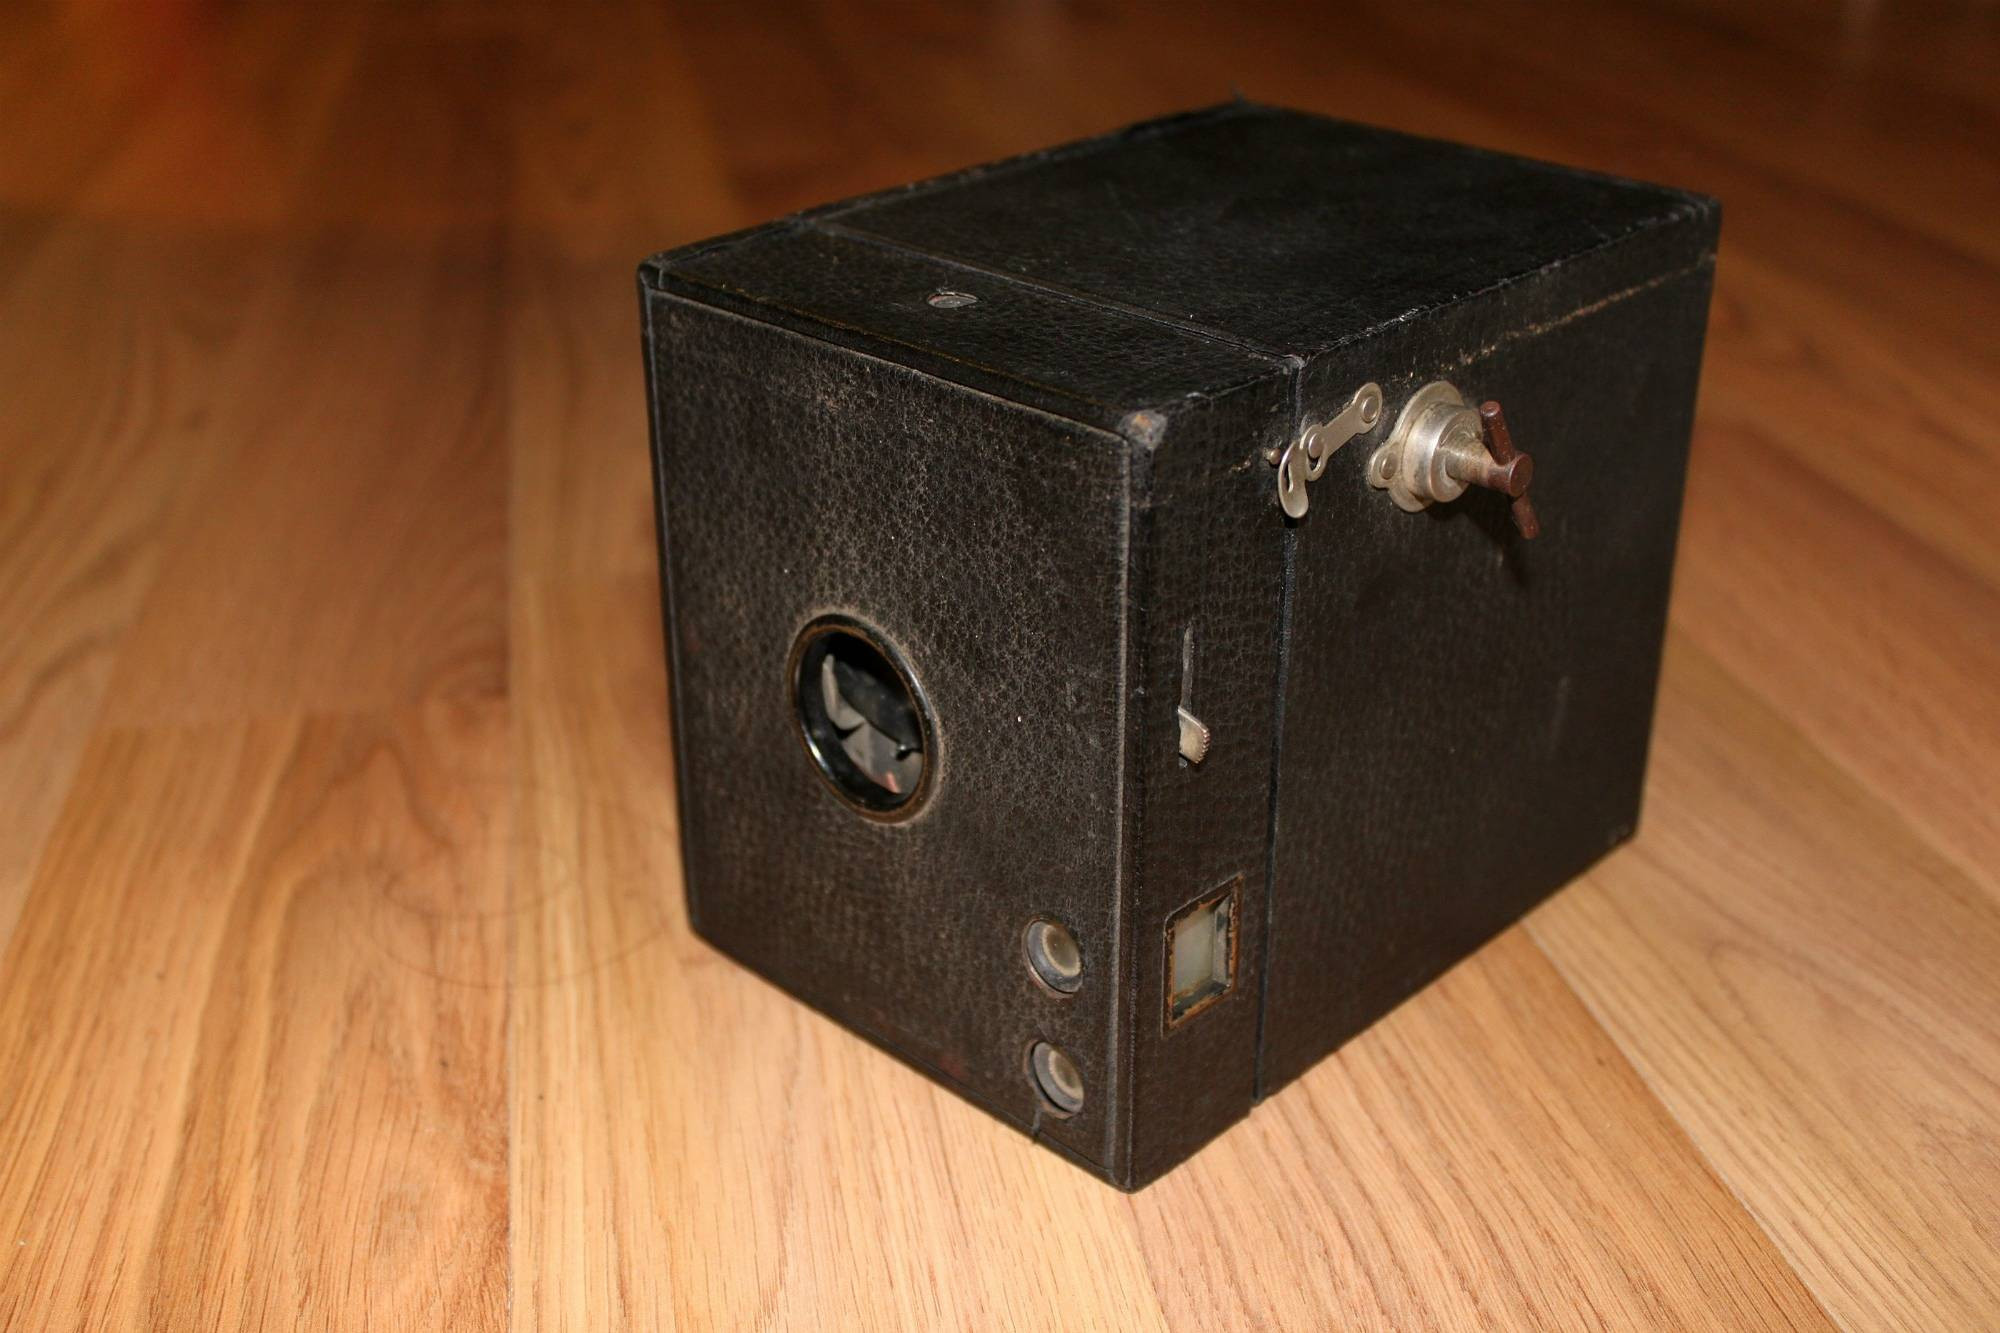 hardwood floor supply of vintage find no 3 brownie camera a· lomography regarding from underneath piles of papers folders dust and old photos i dug out this strange looking black box i turned it over a few times before it hit me that